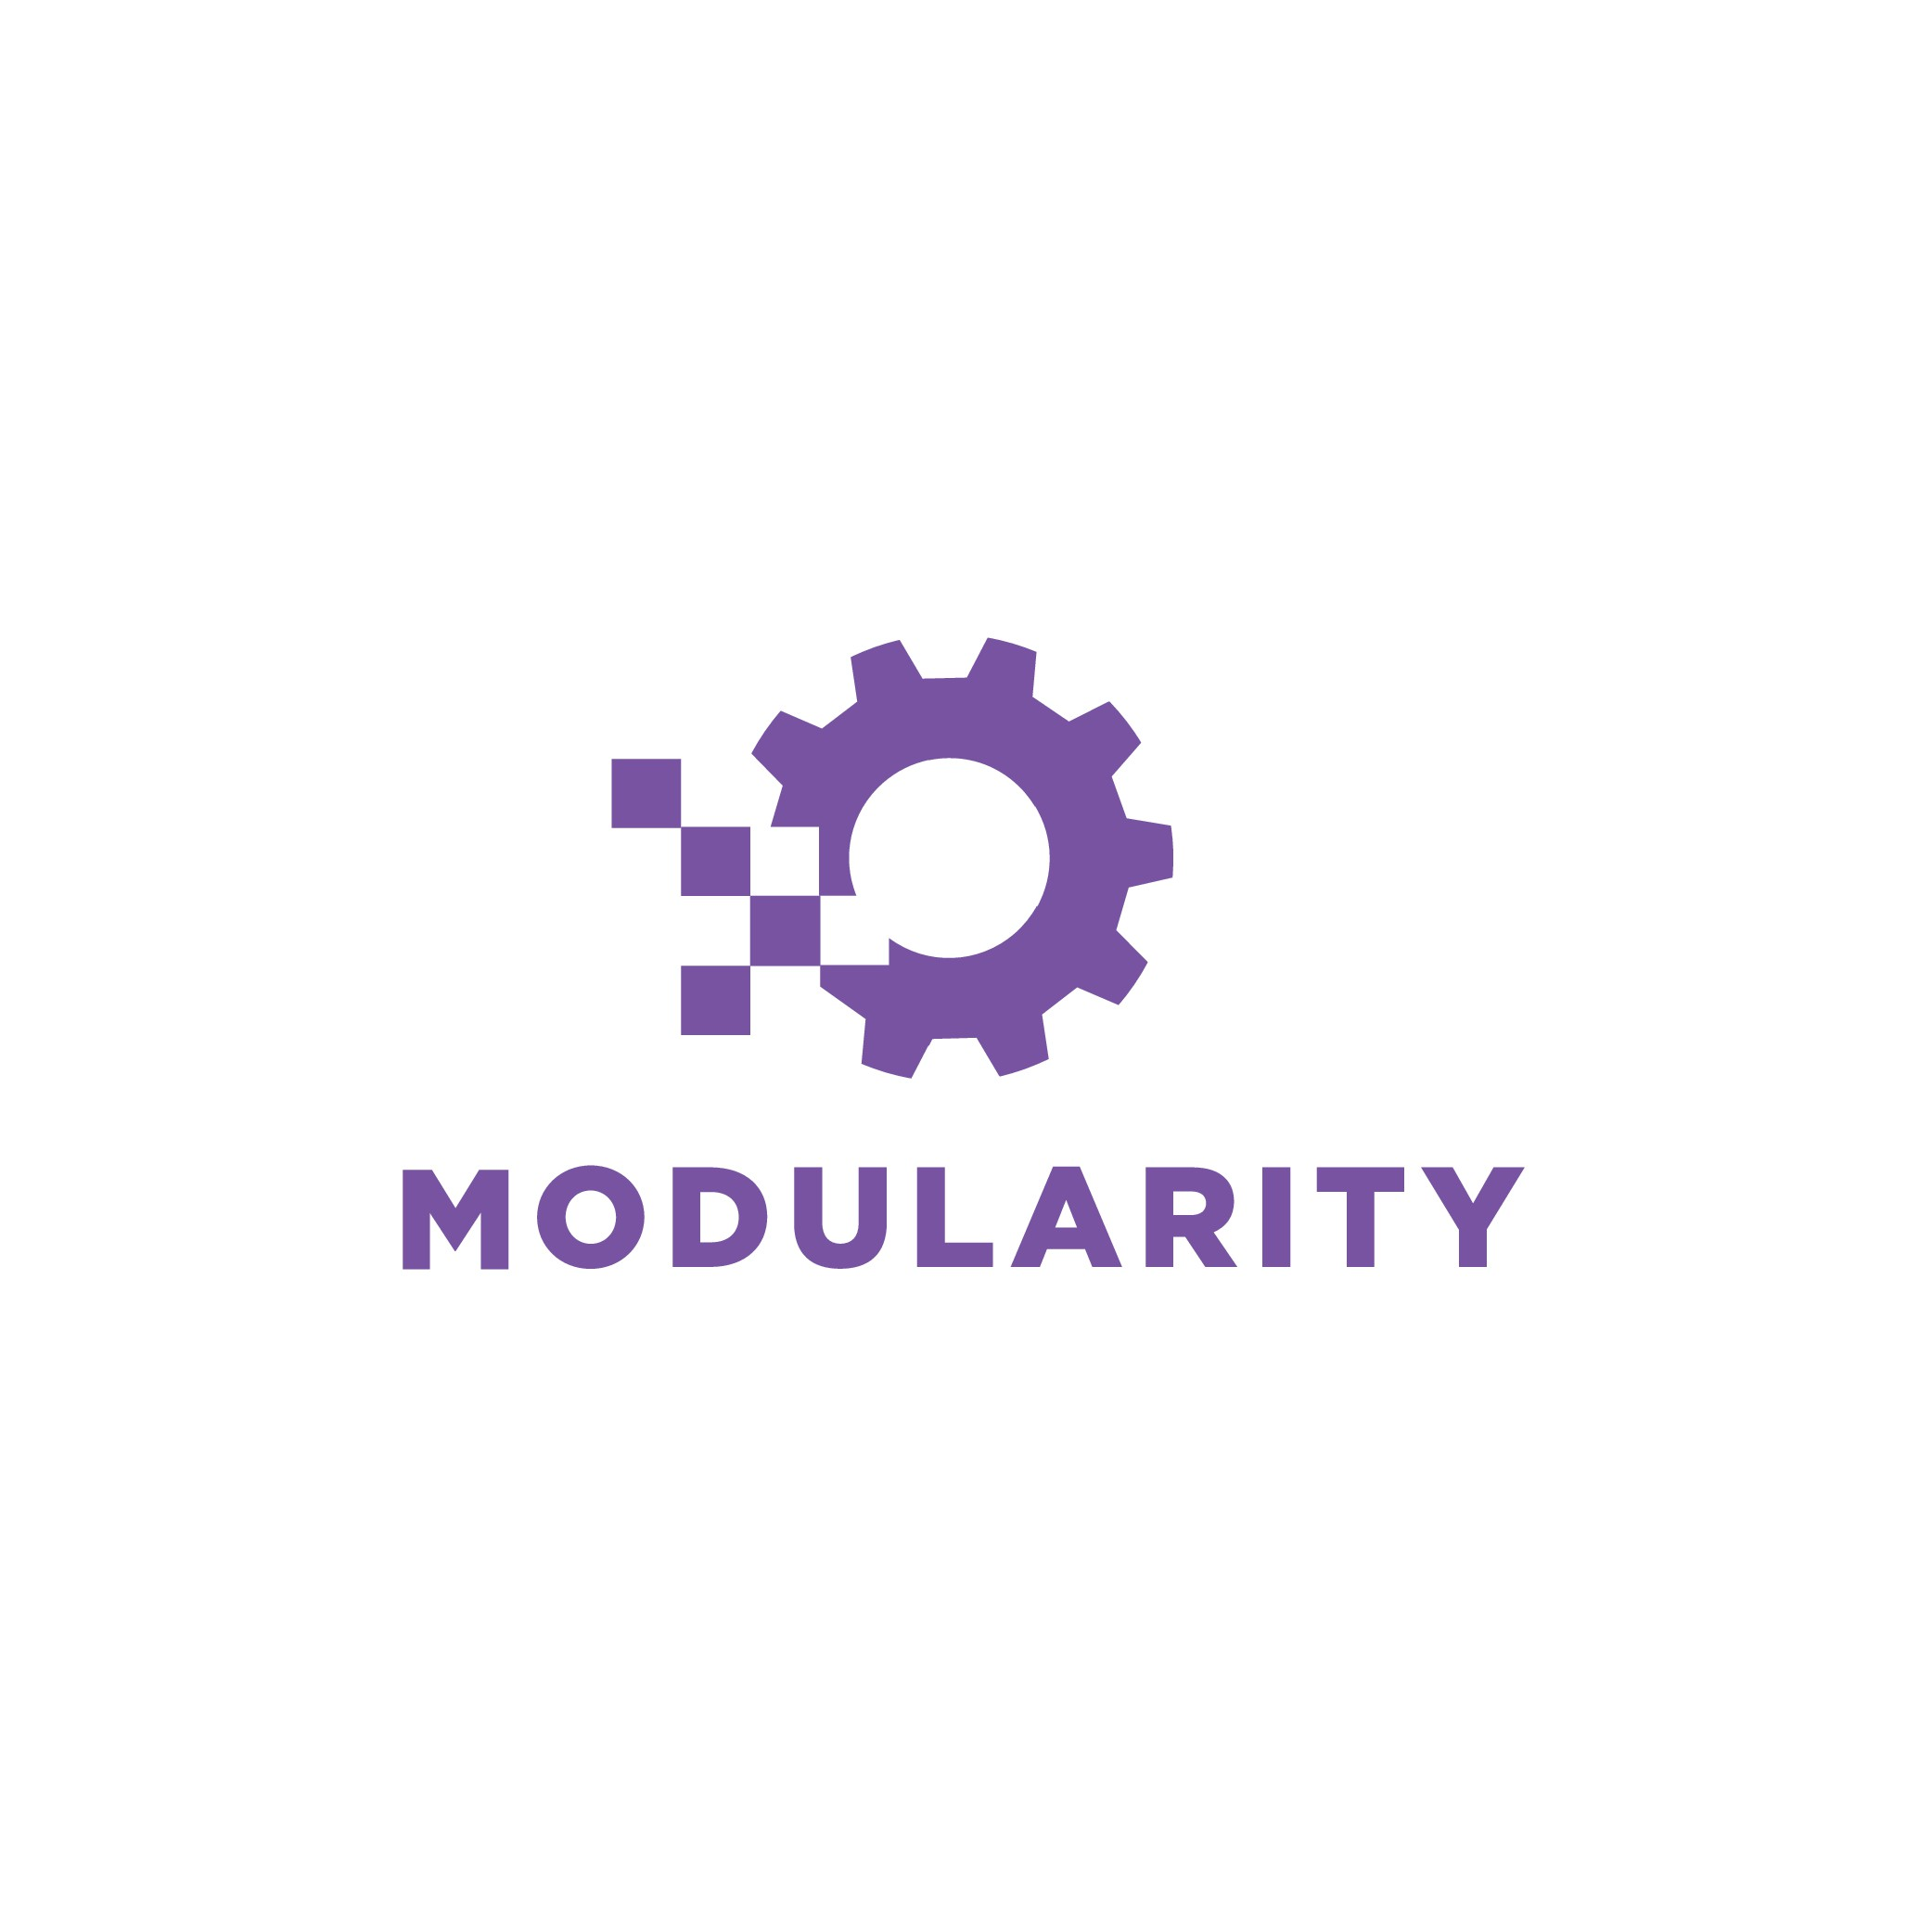 Video game publisher focused on creativity and mods needs logo